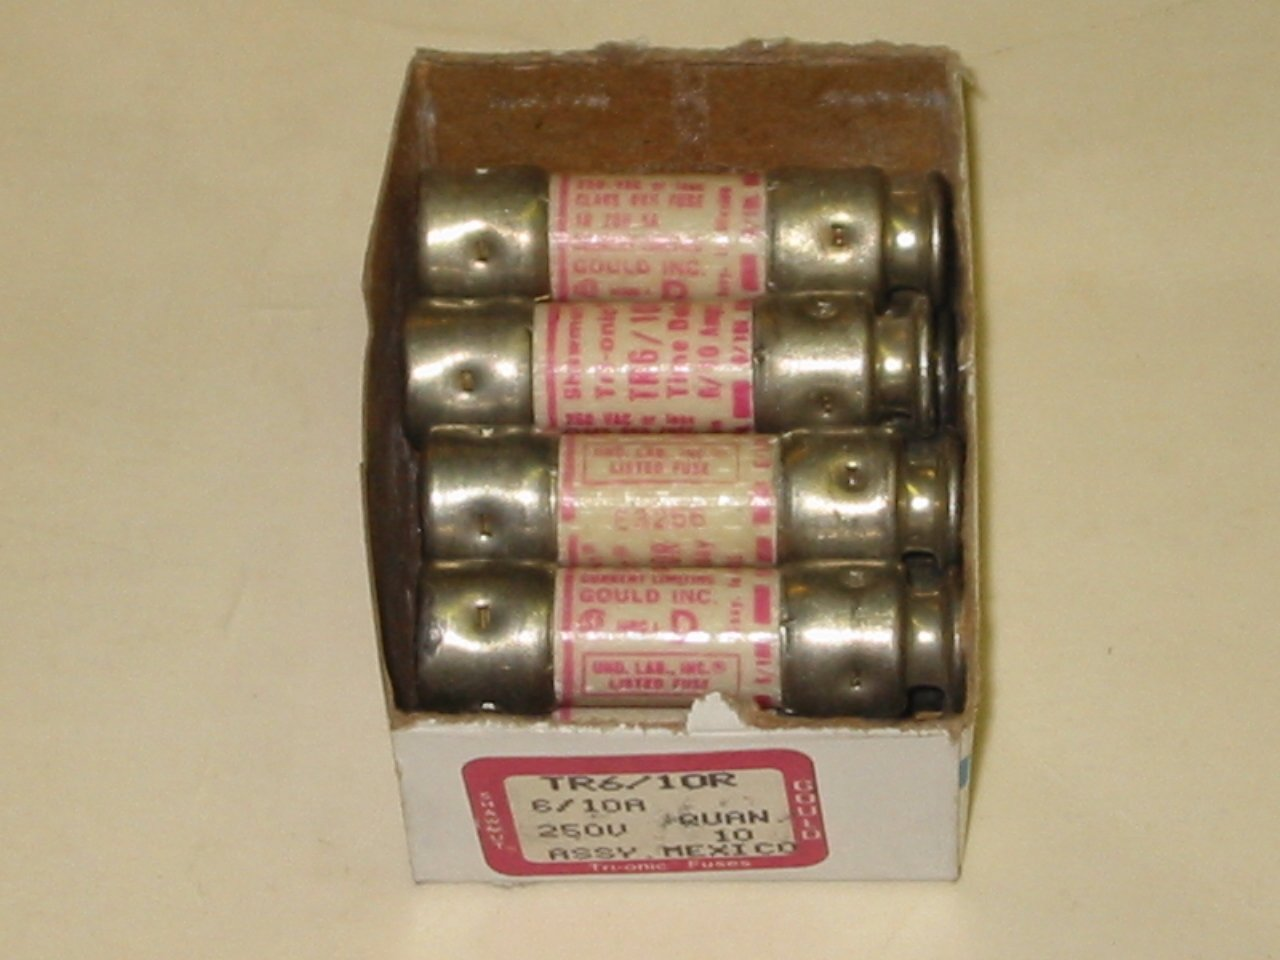 9 FUSE LOT - TR6/10R SHAWMUT TIME DELAY, DUAL ELEMENT, 6/10 MPA FUSES TRIONIC 250V 6/10A